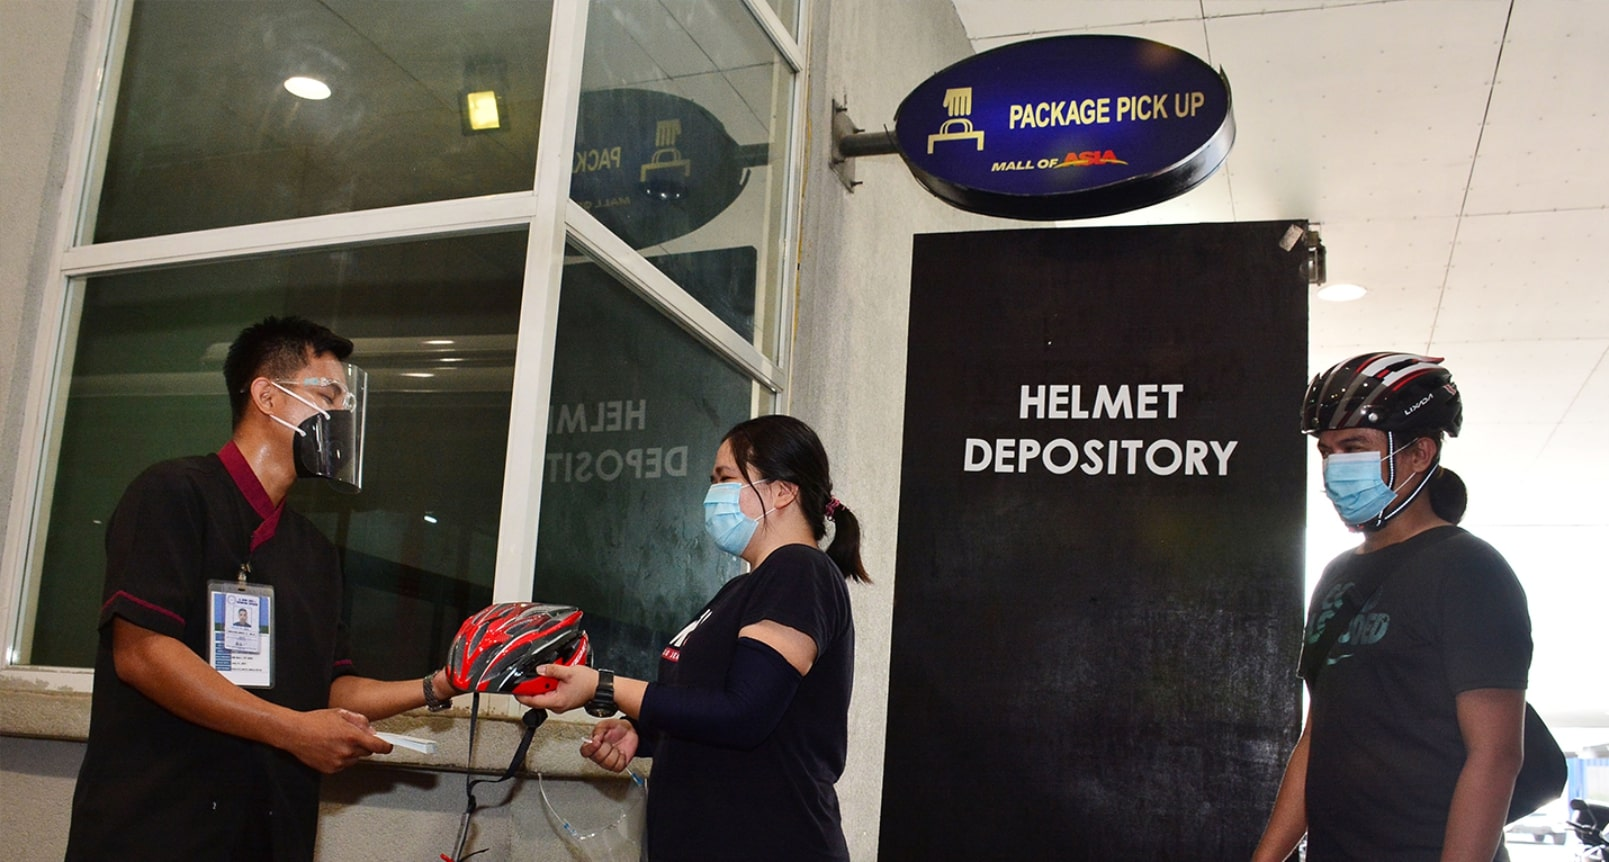 Helmet depository in the SM Mall of Asia